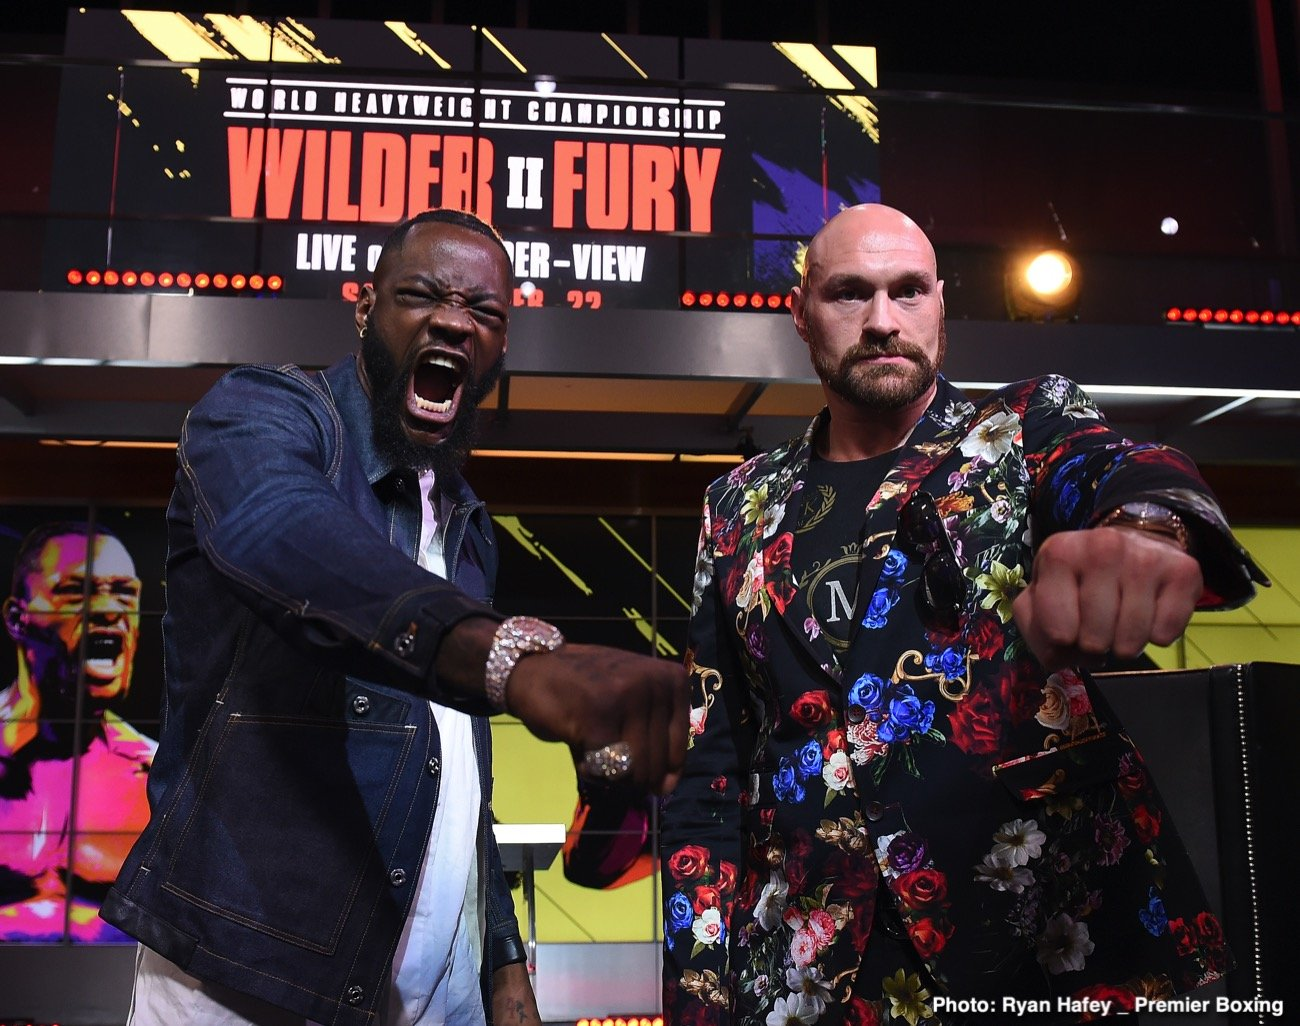 Deontay Wilder, Tyson Fury - It's looking as though Tyson Fury and Deontay Wilder will have to wait until a few days before the Christmas holidays before they can settle their rivalry. For although many fans feel Fury has already proven he is the superior fighter of the two - what with his display in the drawn fight making many feel he actually won, and then the total hammering Fury dished out on Wilder in the rematch leaving no doubt - the third fight is contracted and will go ahead.